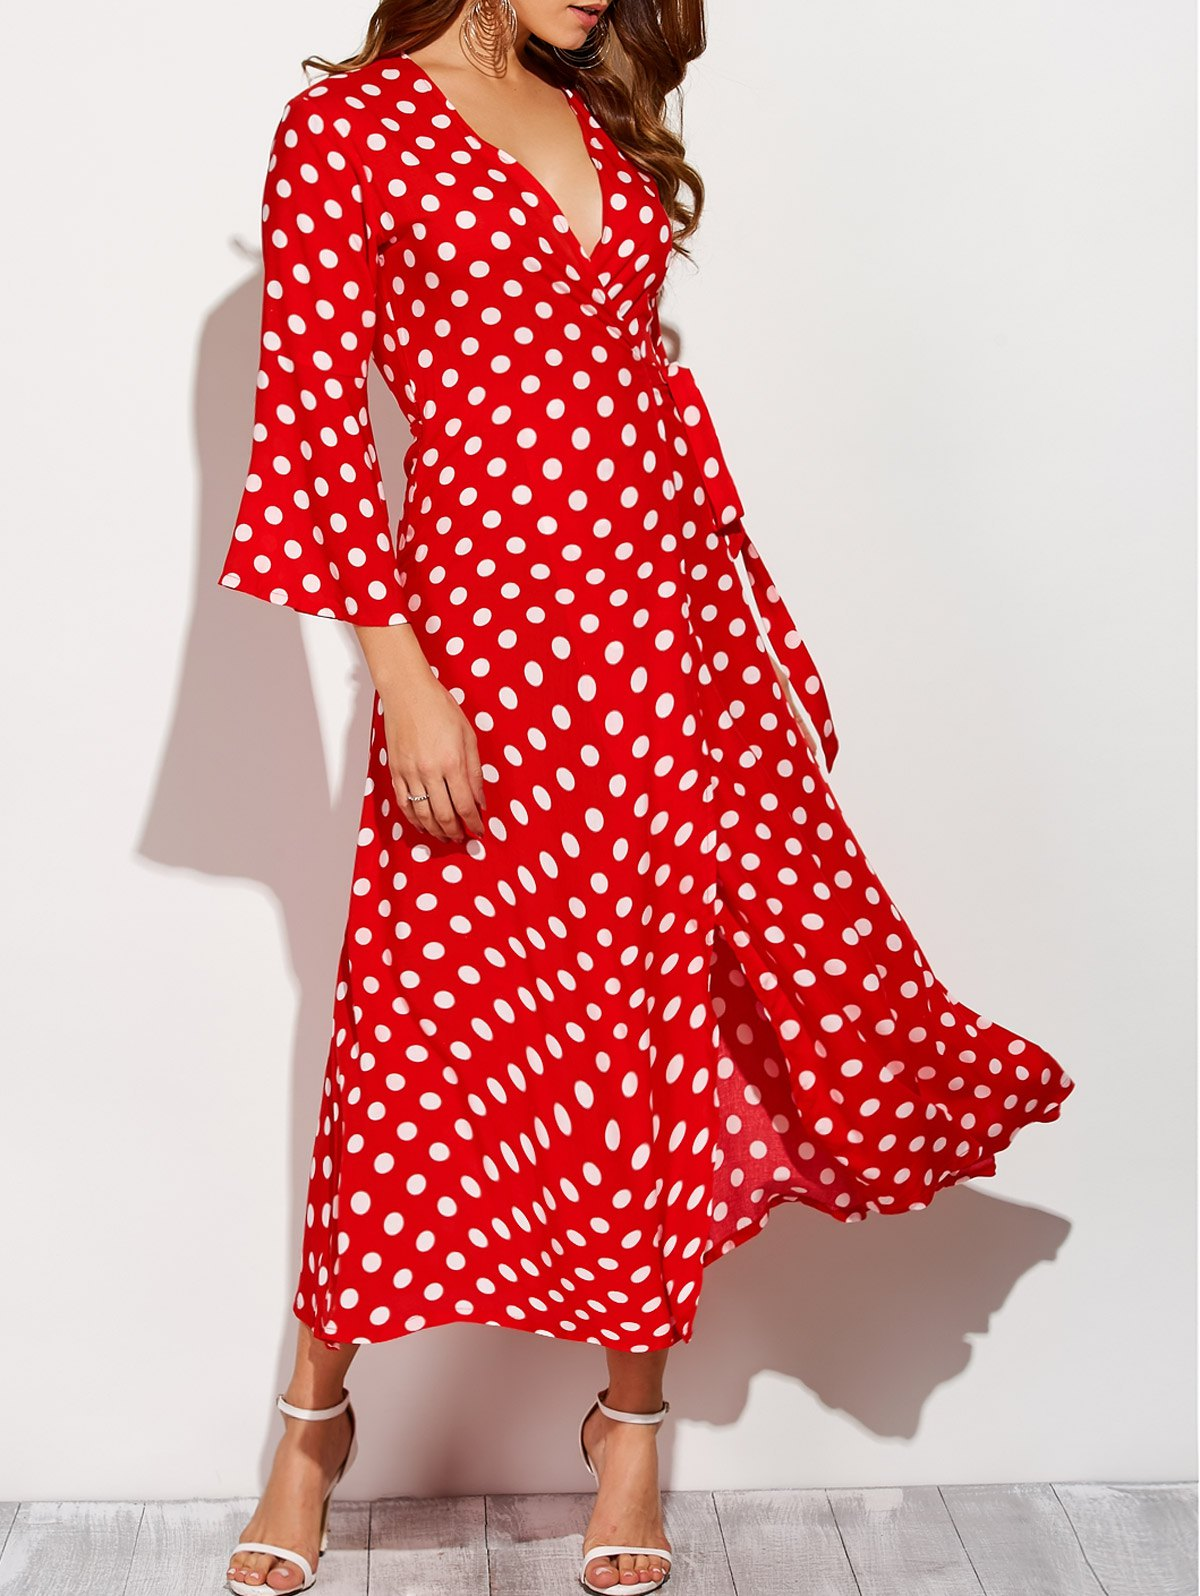 Polka Dot Maxi Christmas Wrap DressClothes<br><br><br>Size: XL<br>Color: RED WITH WHITE